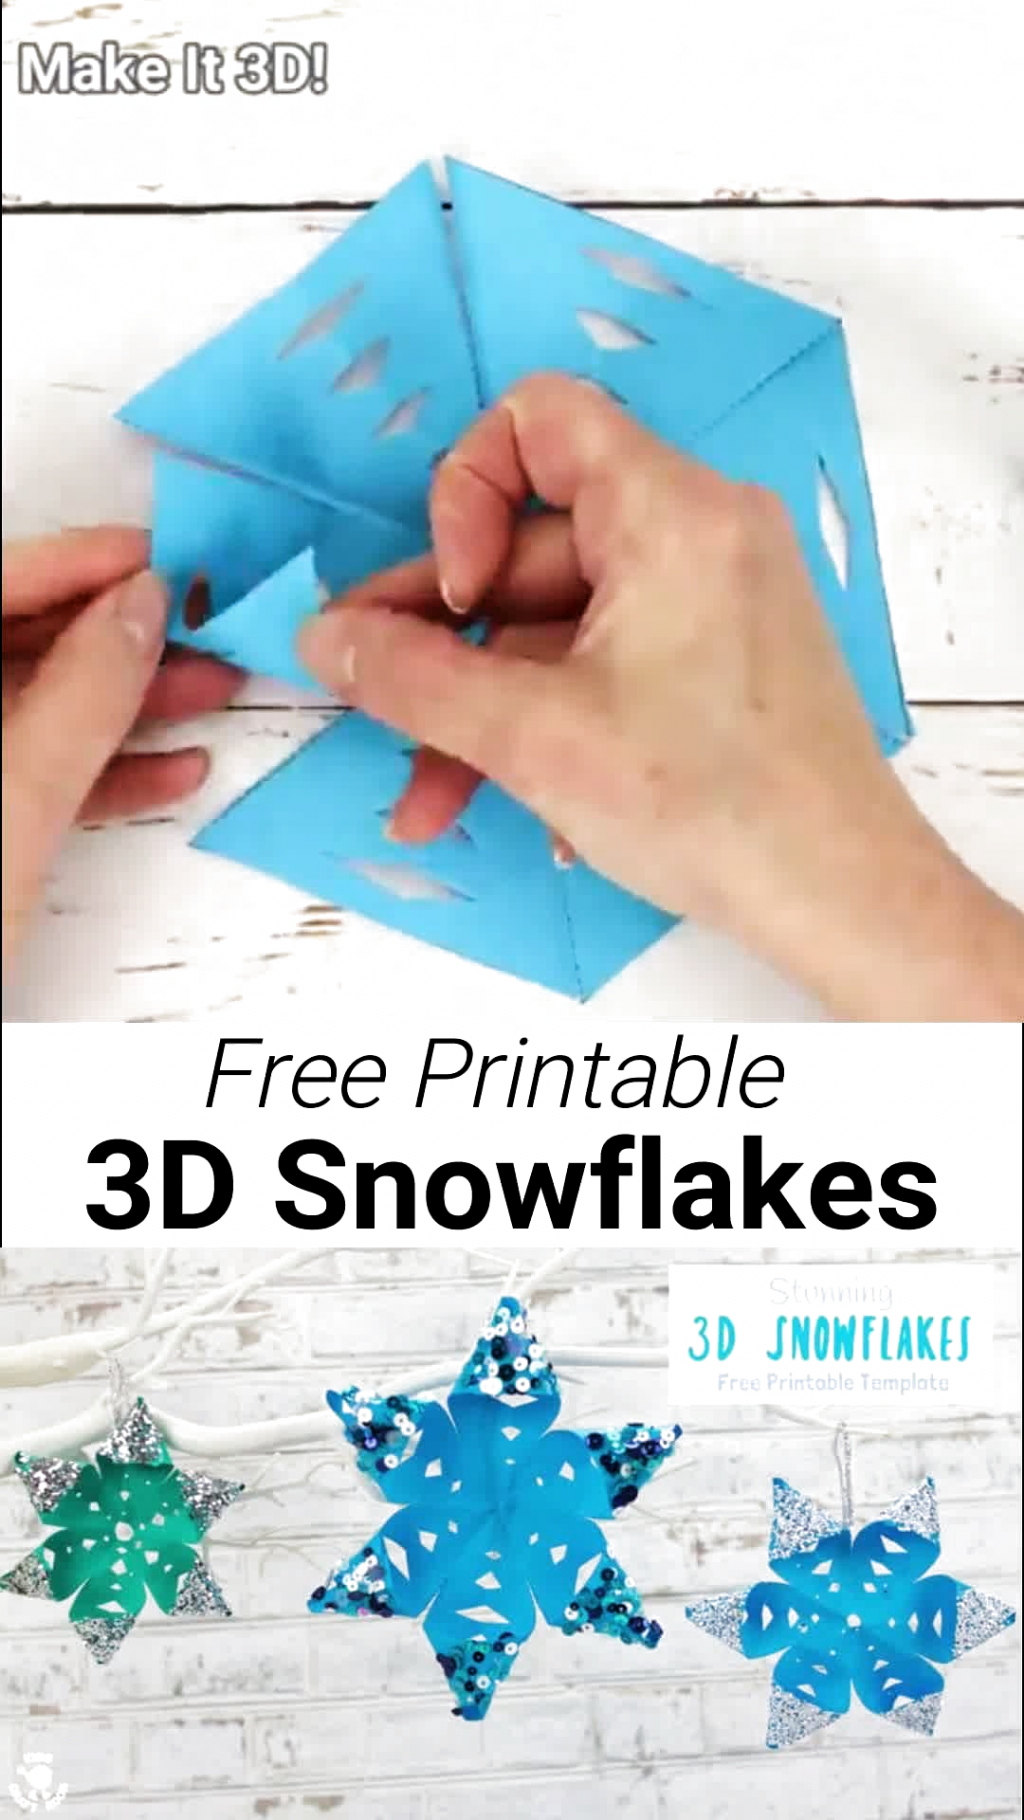 STUNNING 3D SNOWFLAKE CRAFT - perfect for hanging on the Christmas tree or for Winter themed fun! A Winter craft with a difference! To keep things super simple weve got a free printable template for you, available in 3 different sizes. Start your Winter paper craft today! #kidscraftroom #snowflakes #snowflakecrafts #christmas #ornaments #christmascrafts #wintercrafts #winteractivities #snow #kidscrafts #papercrafts #kidscraftroom